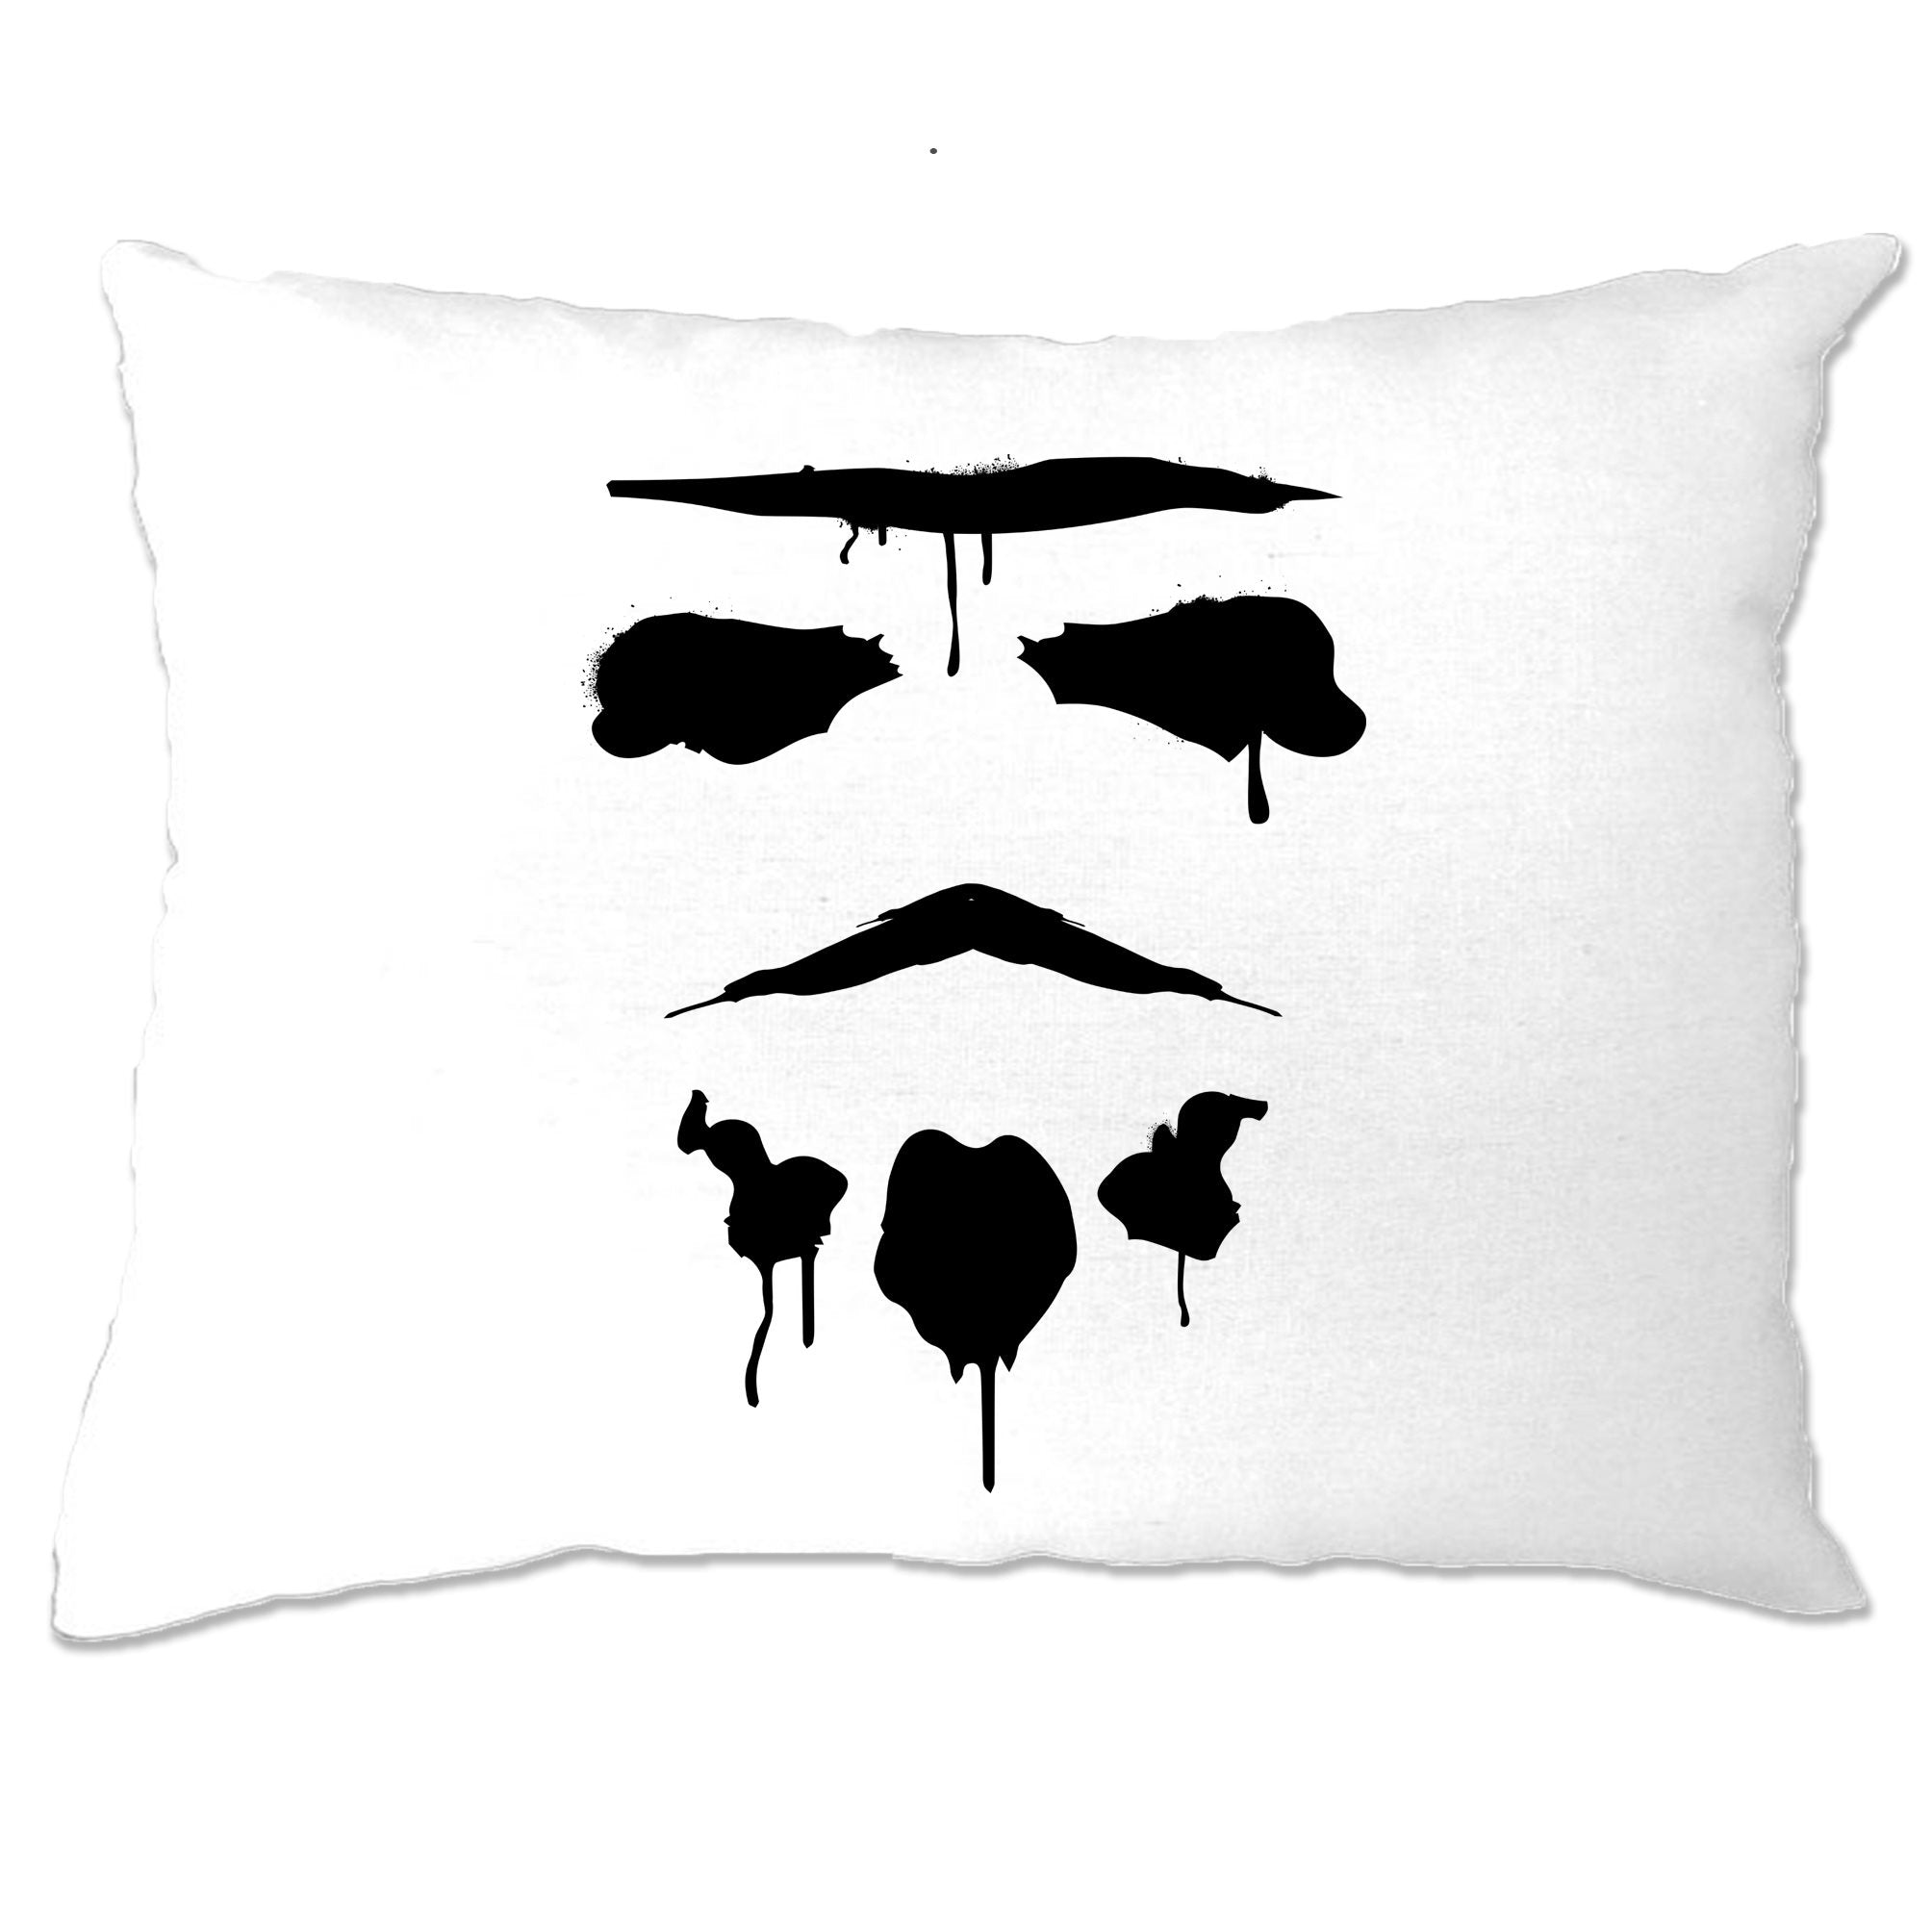 Graffiti Trooper Rorschach Mask Pillow Case